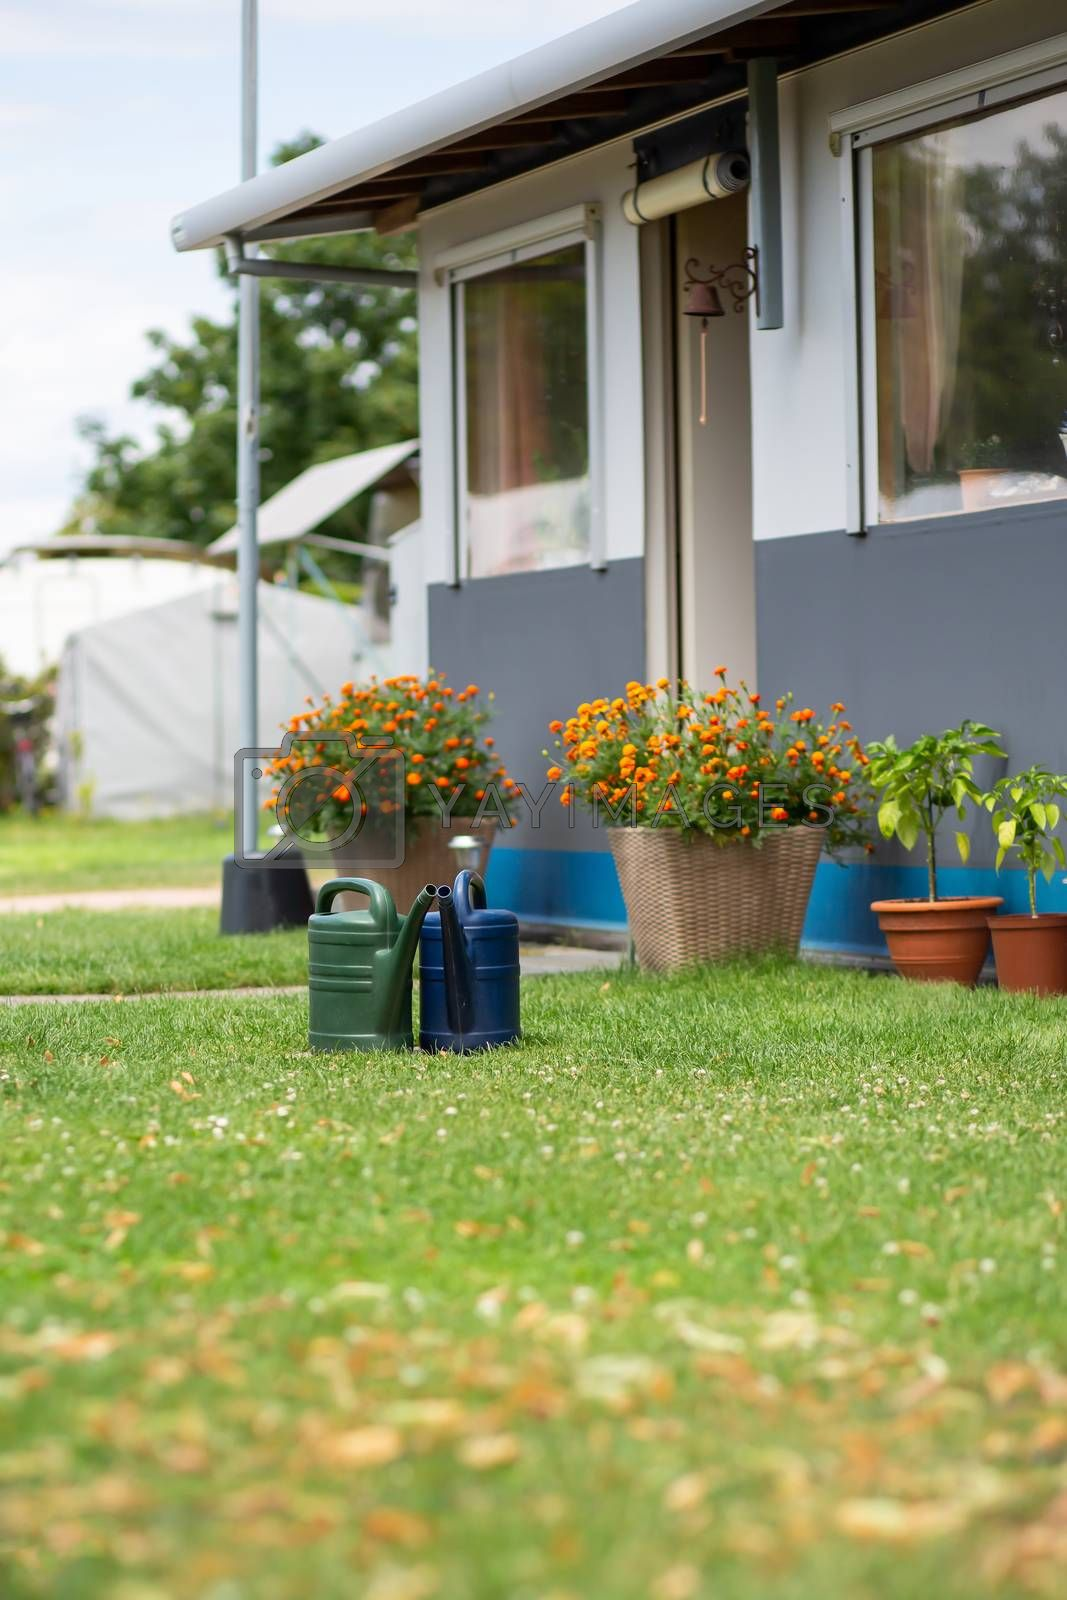 Two watering cans are standing in the meadow at a campsite by Sandra Fotodesign